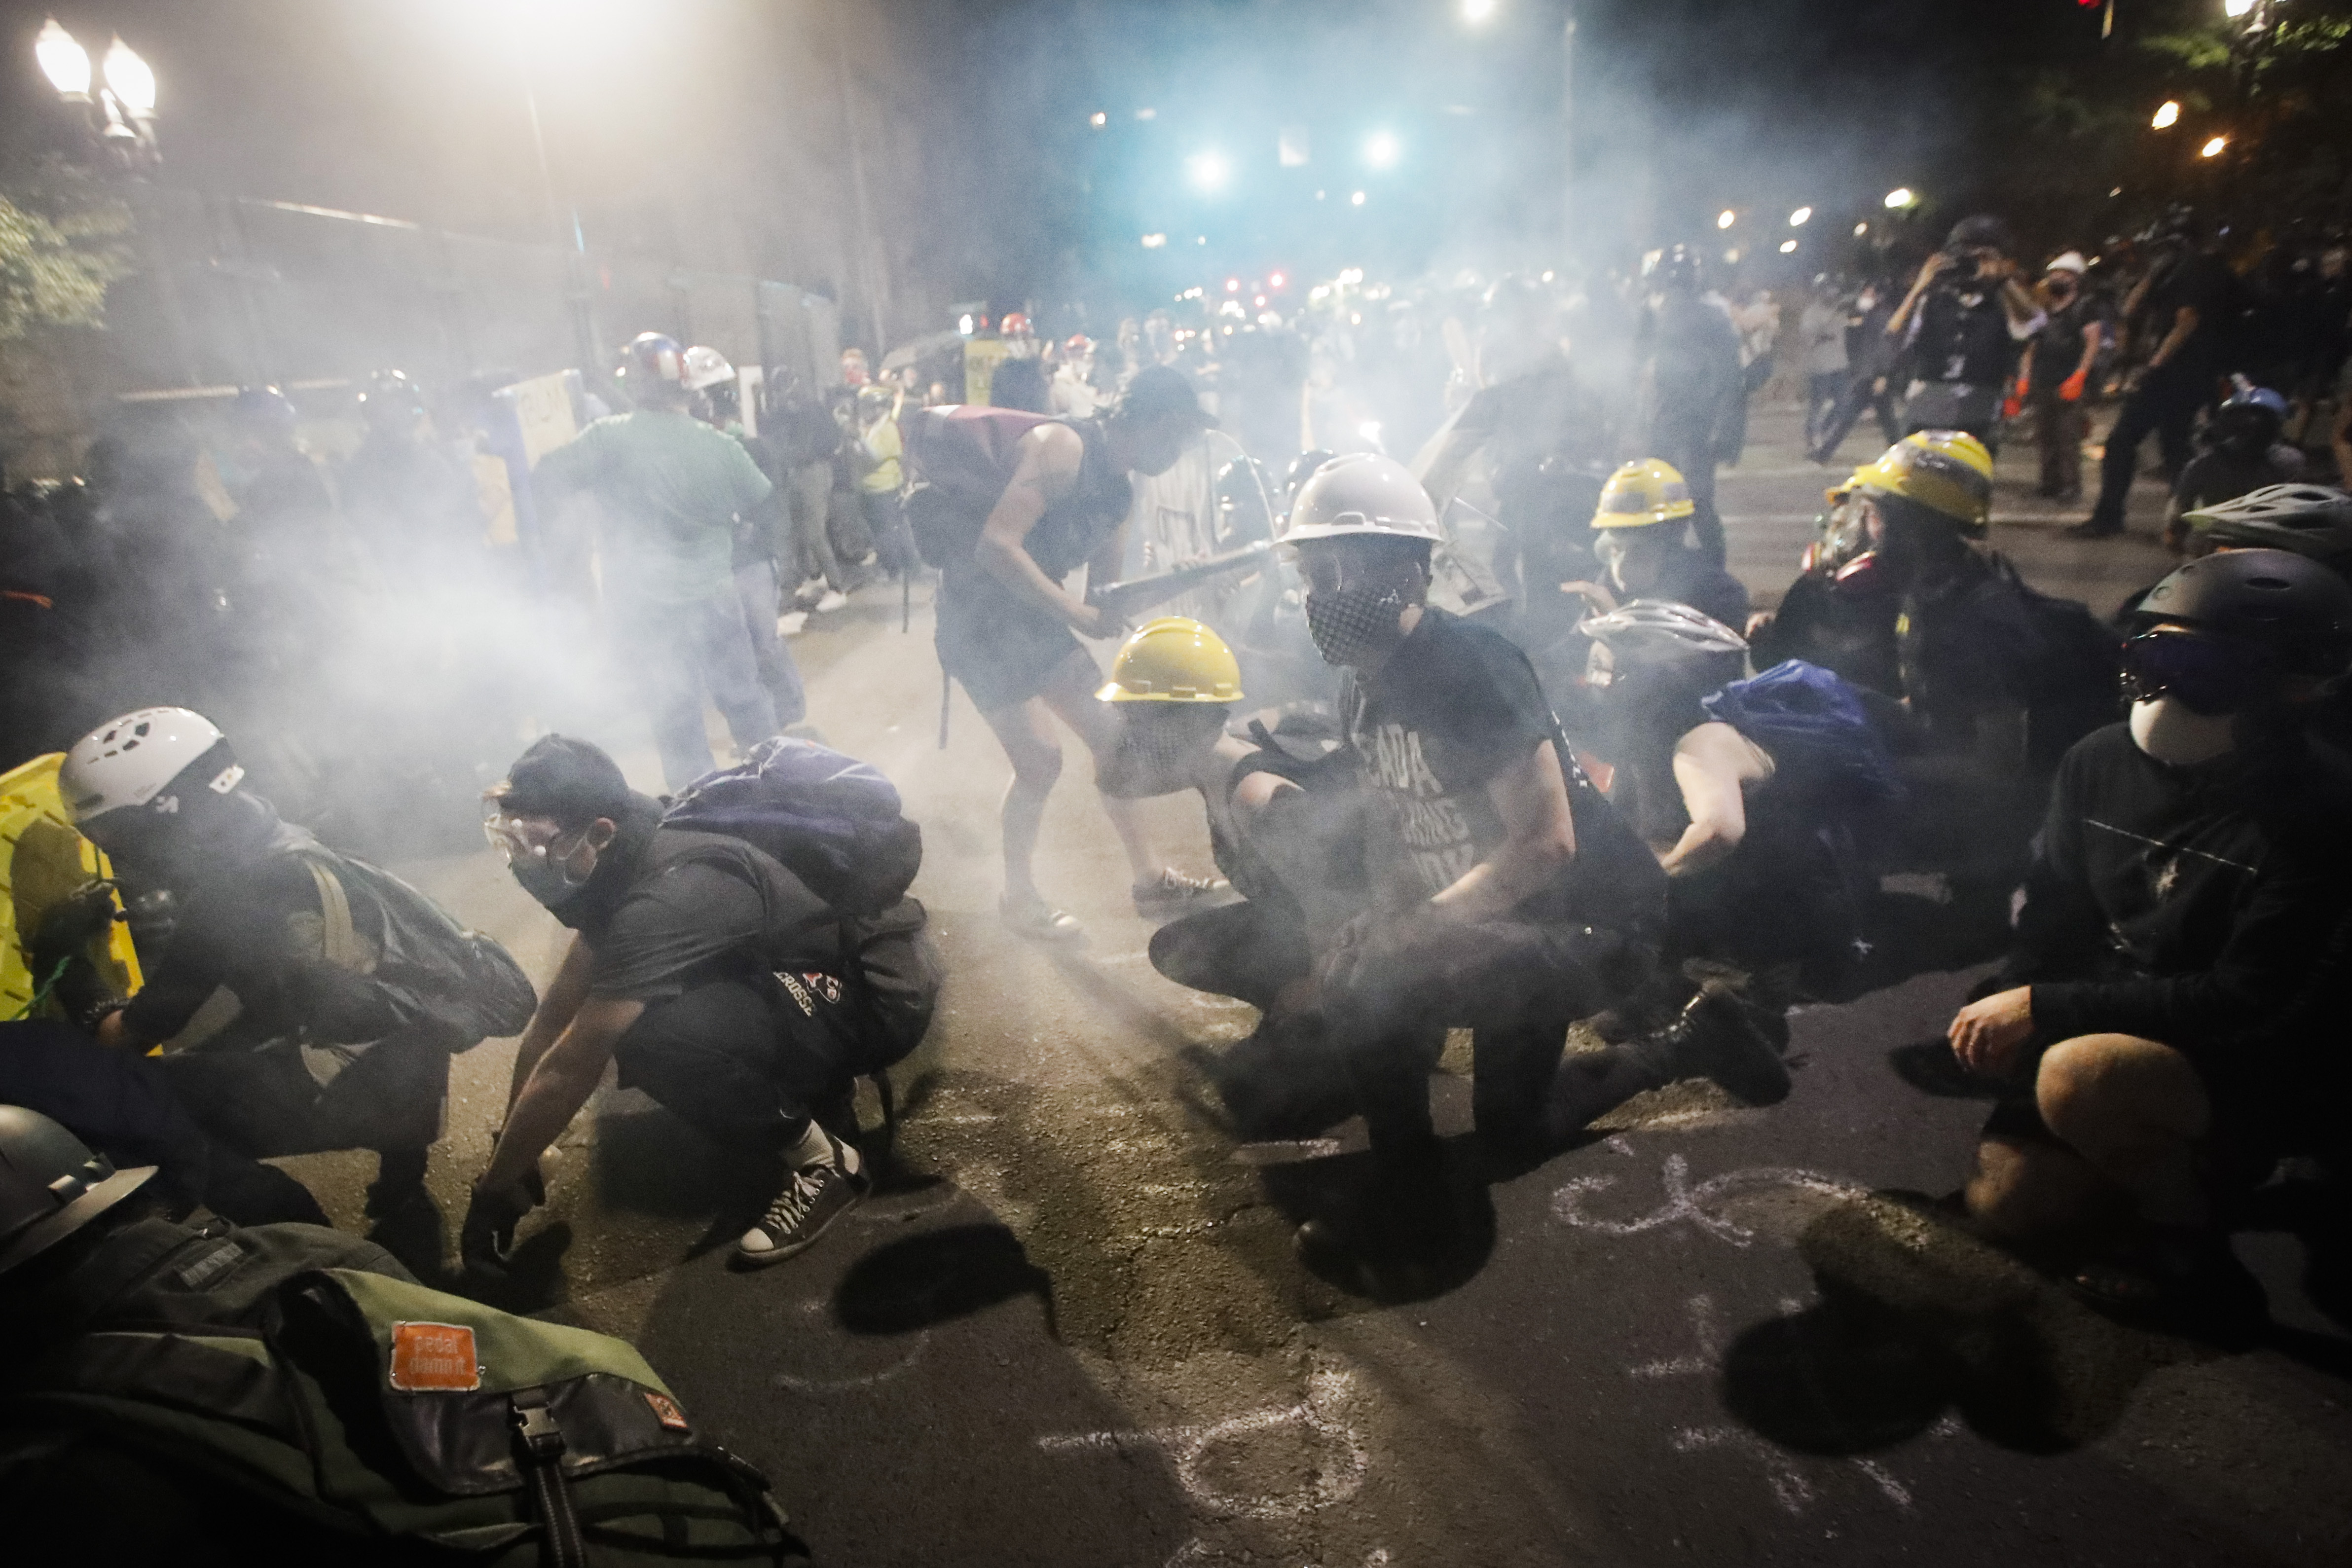 Demonstrators sit and kneel as tear gas fills the air during a Black Lives Matter protest at the Mark O. Hatfield United States Courthouse Sunday, July 26, 2020, in Portland, Ore. (AP Photo/Marcio Jose Sanchez)